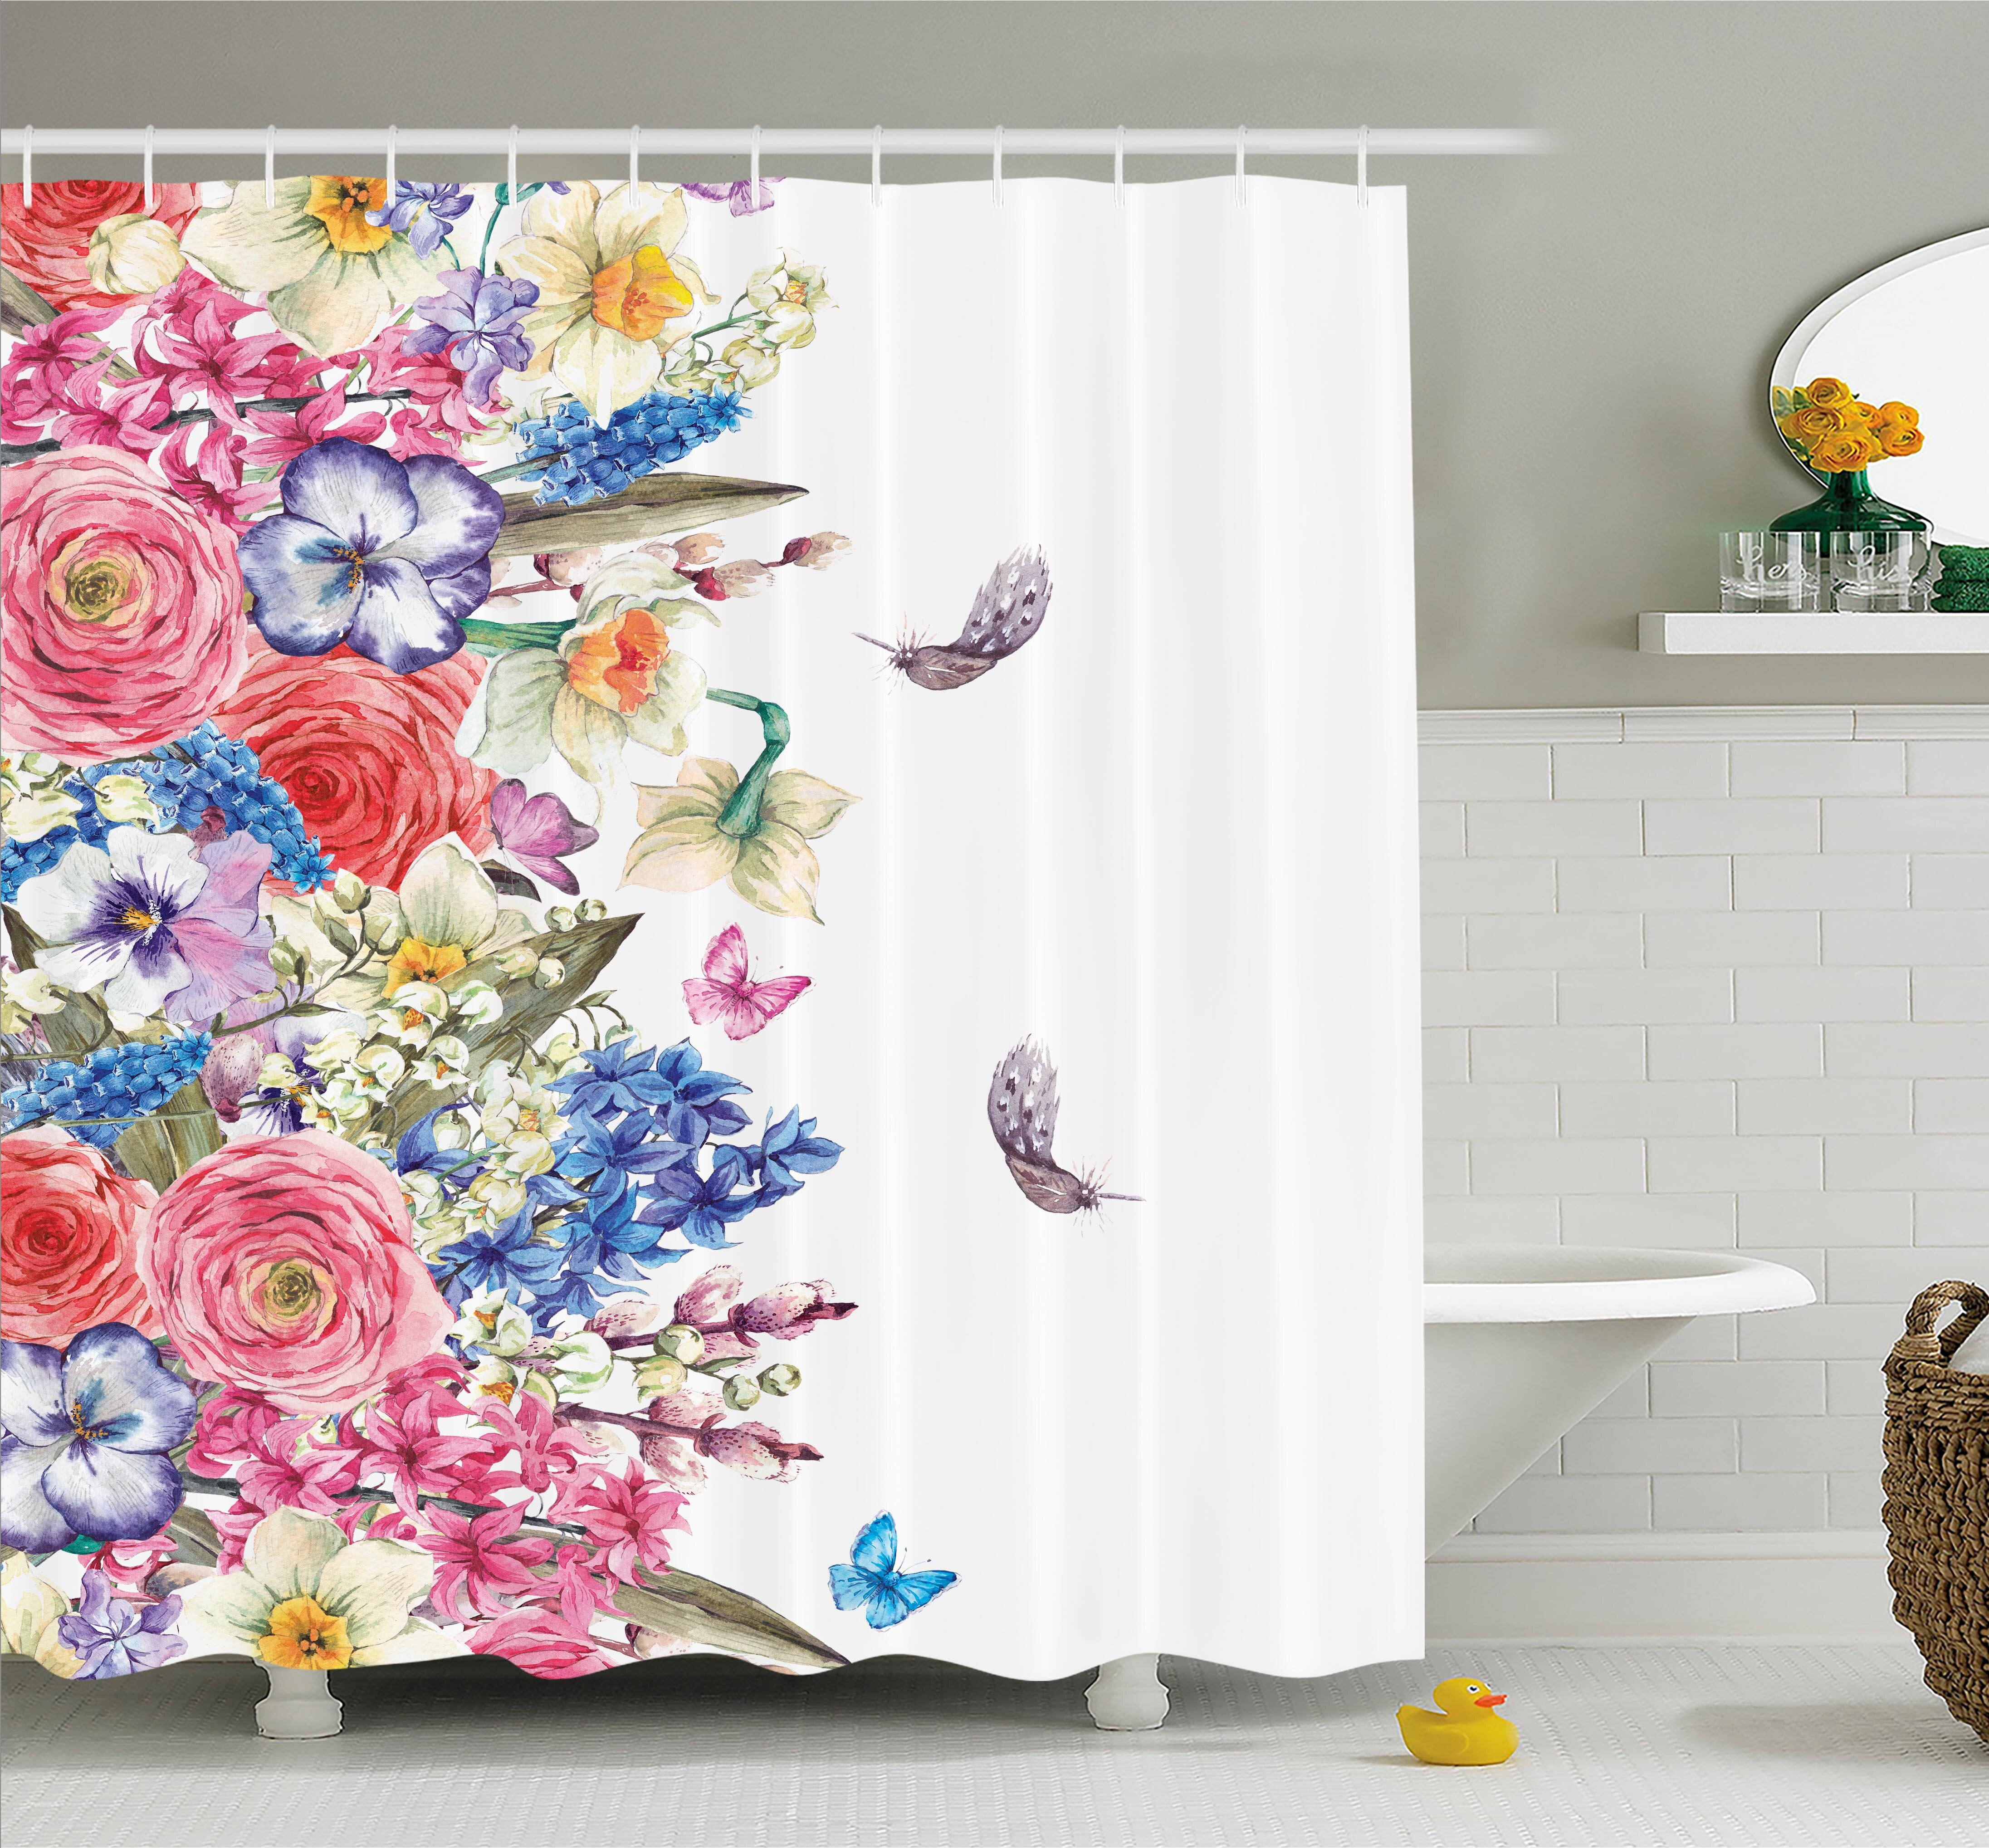 Polyester Fabric Spring Butterfly Flowers Shower Curtain Liner Bathroom Mat Set